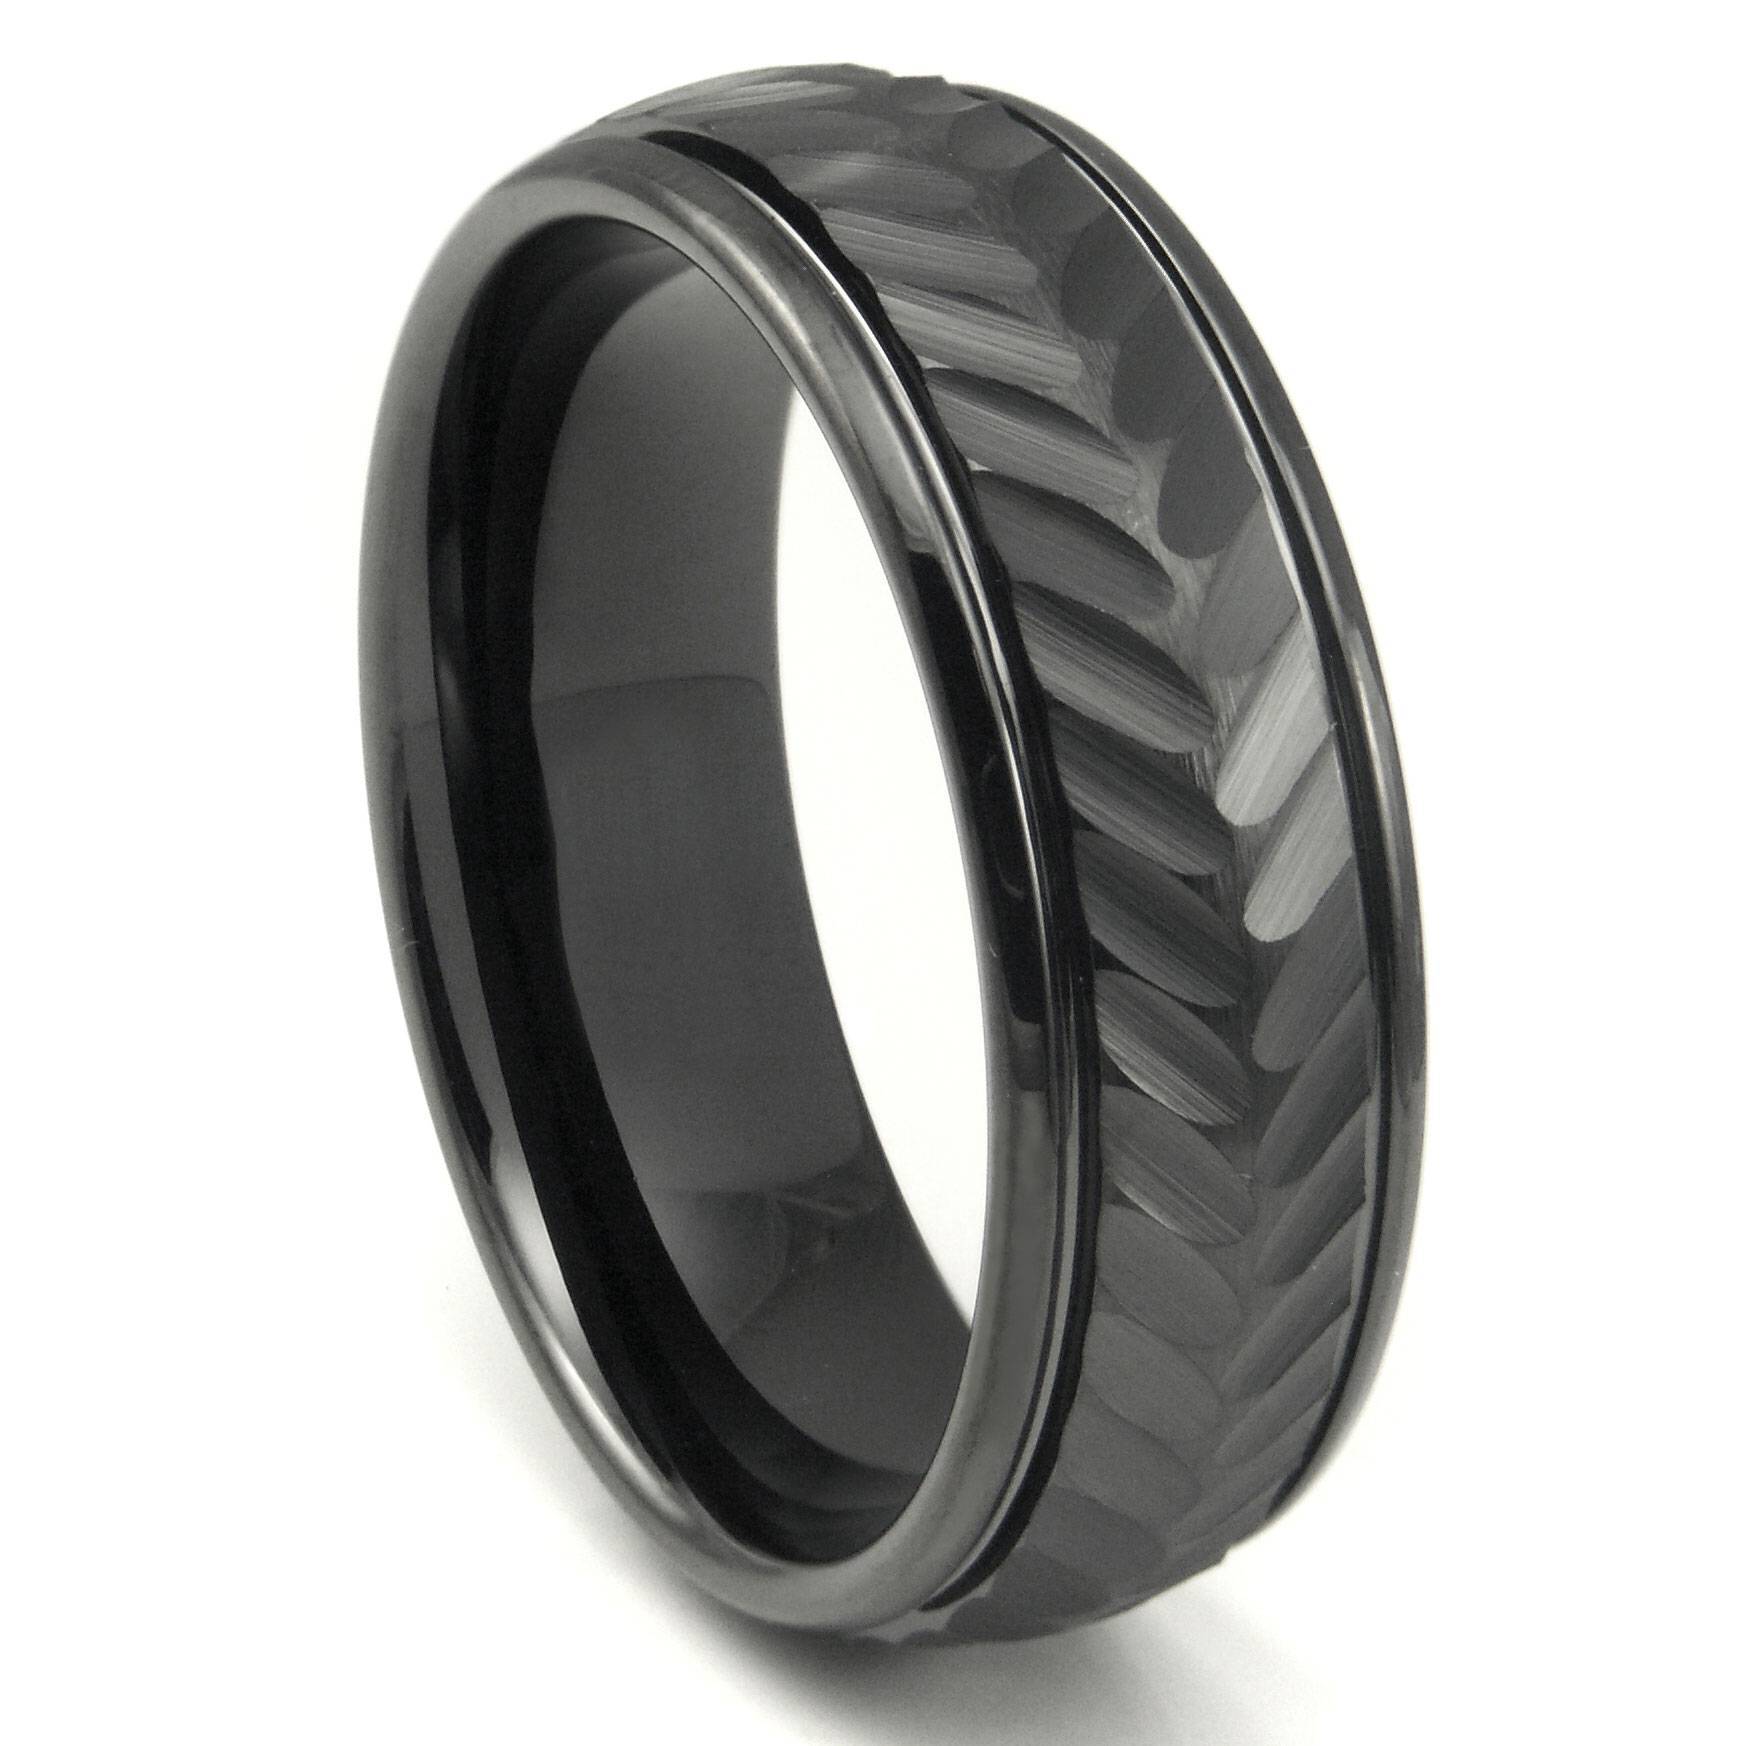 Black Tungsten Carbide 8Mm Chevron Newport Wedding Band Ring Intended For Black Tungsten Wedding Bands (View 2 of 15)